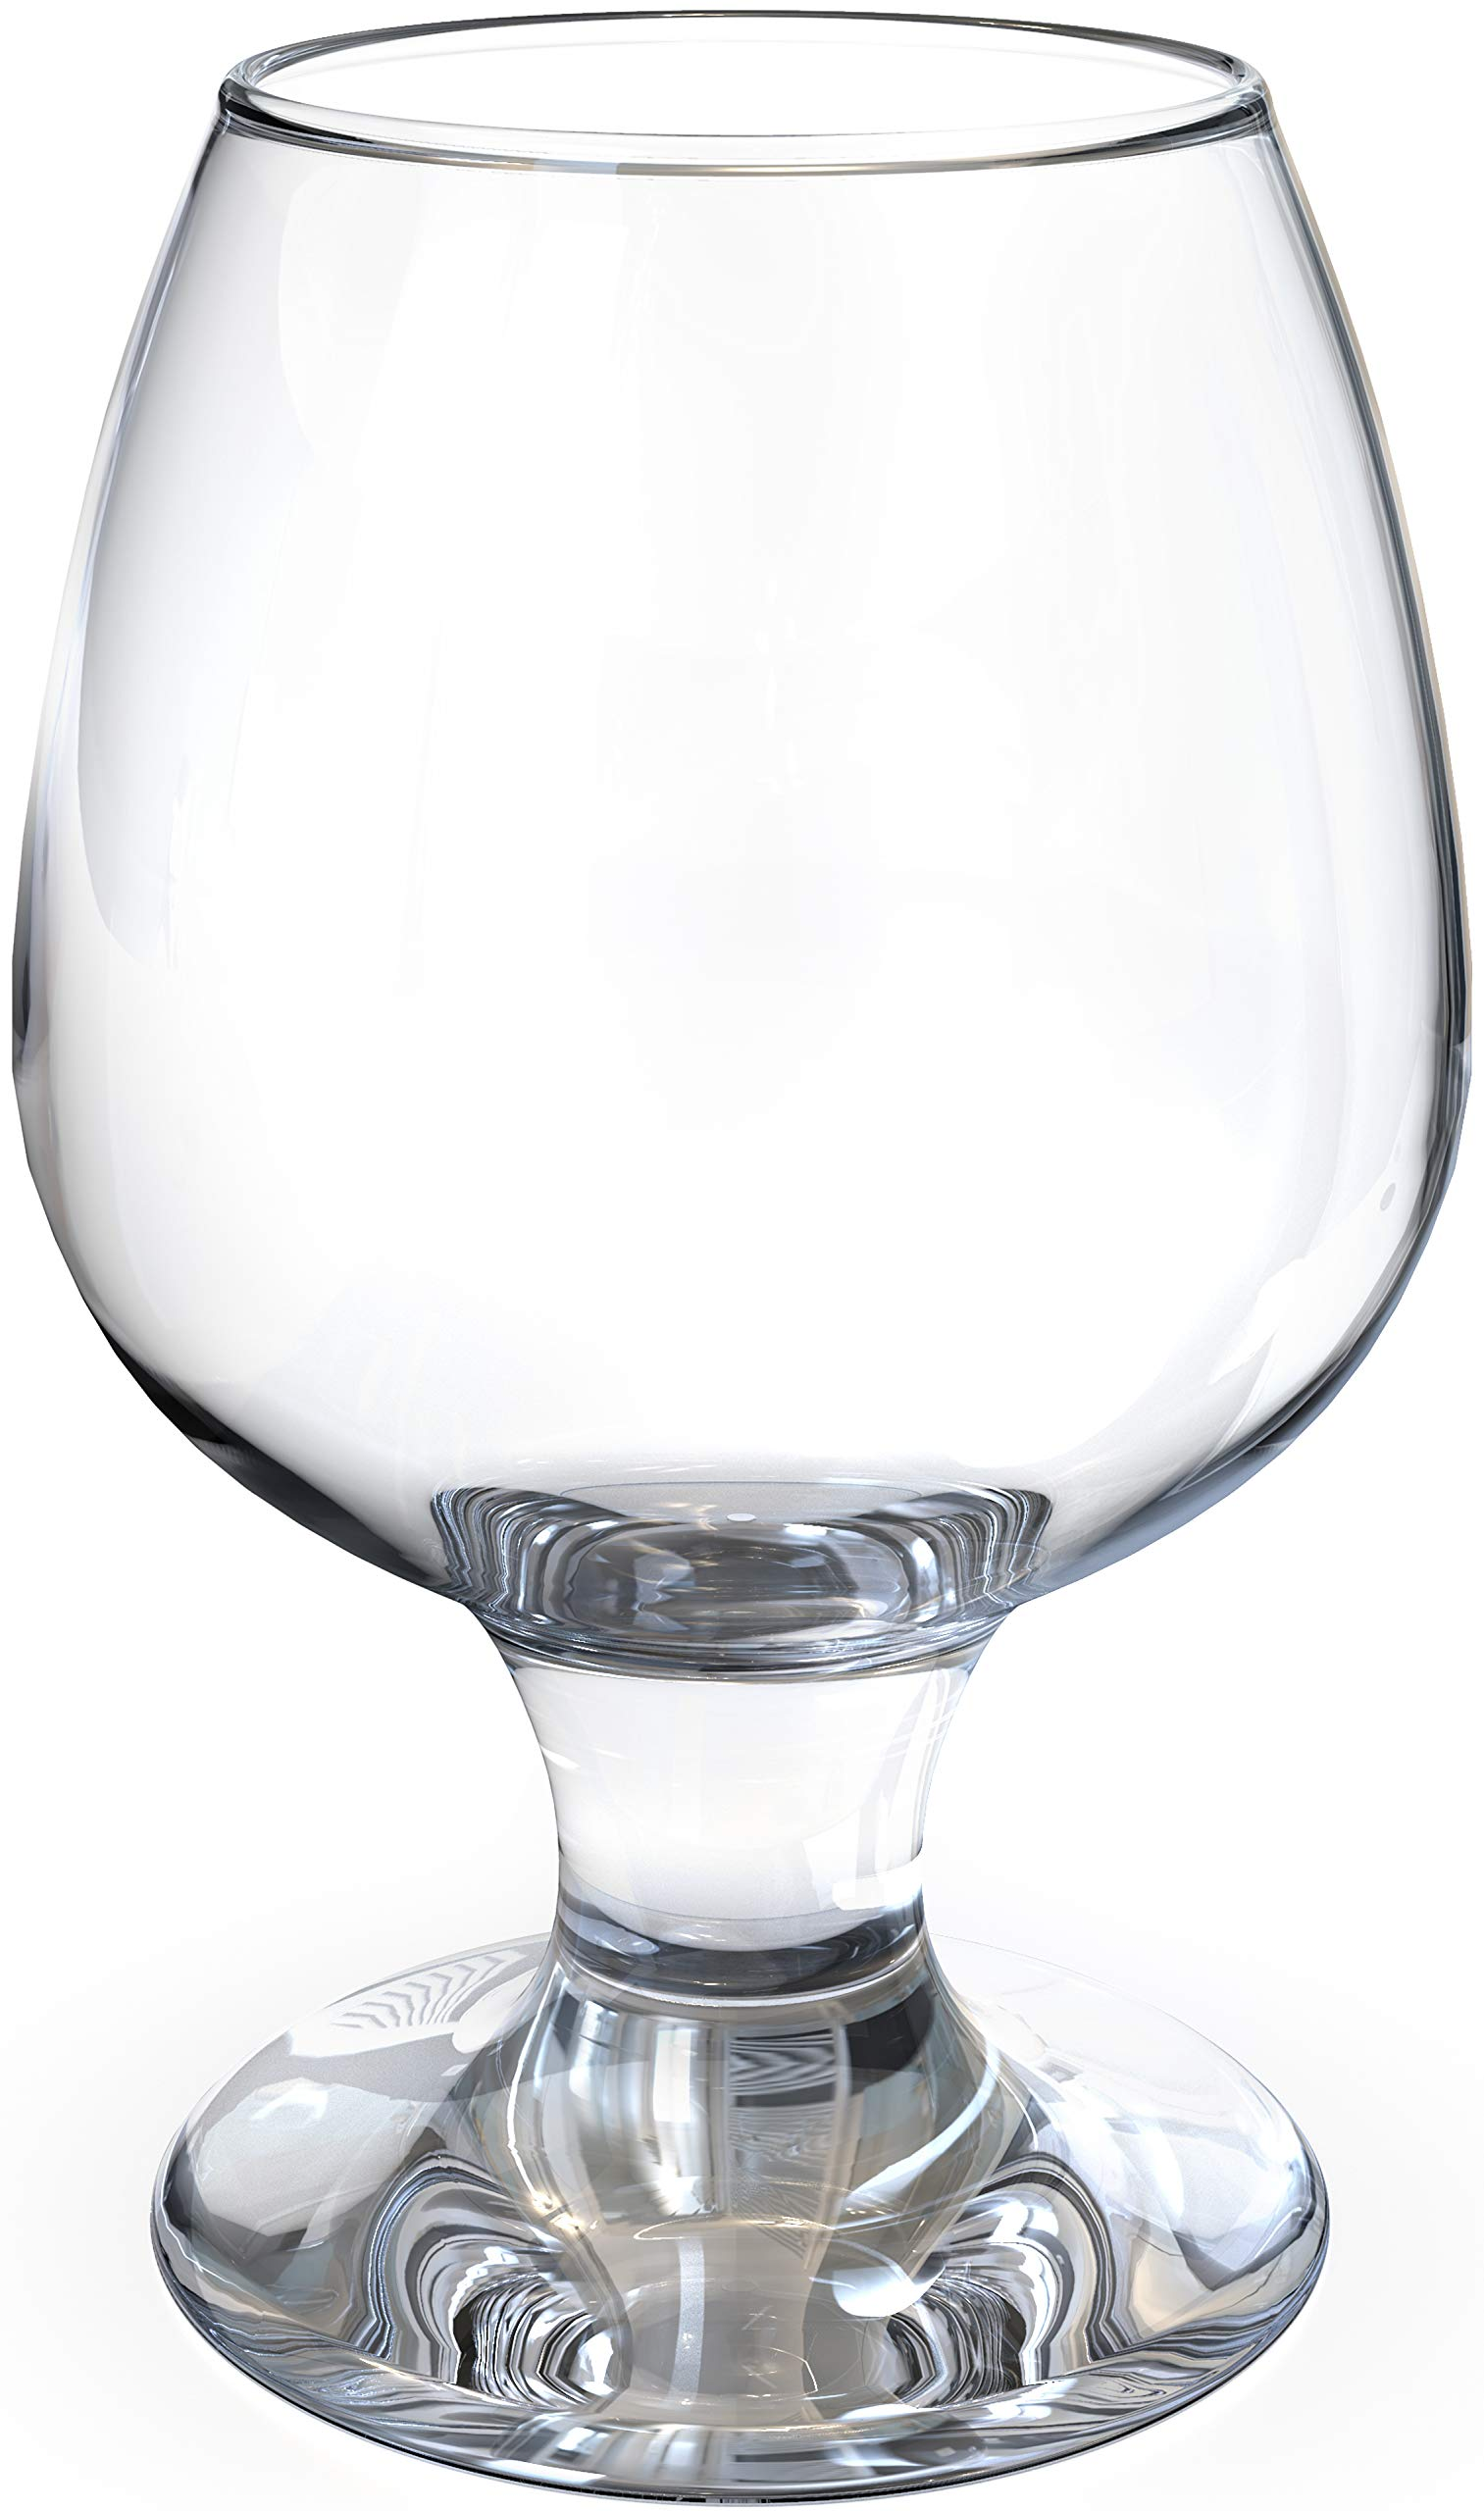 Crystal Snifter Glasses Set of 4 for Cognac Whiskey - New Style Old Fashioned Drink Glasses - Glassware set - Scotch Brandy or Bourbon Tumblers, 8.5 oz